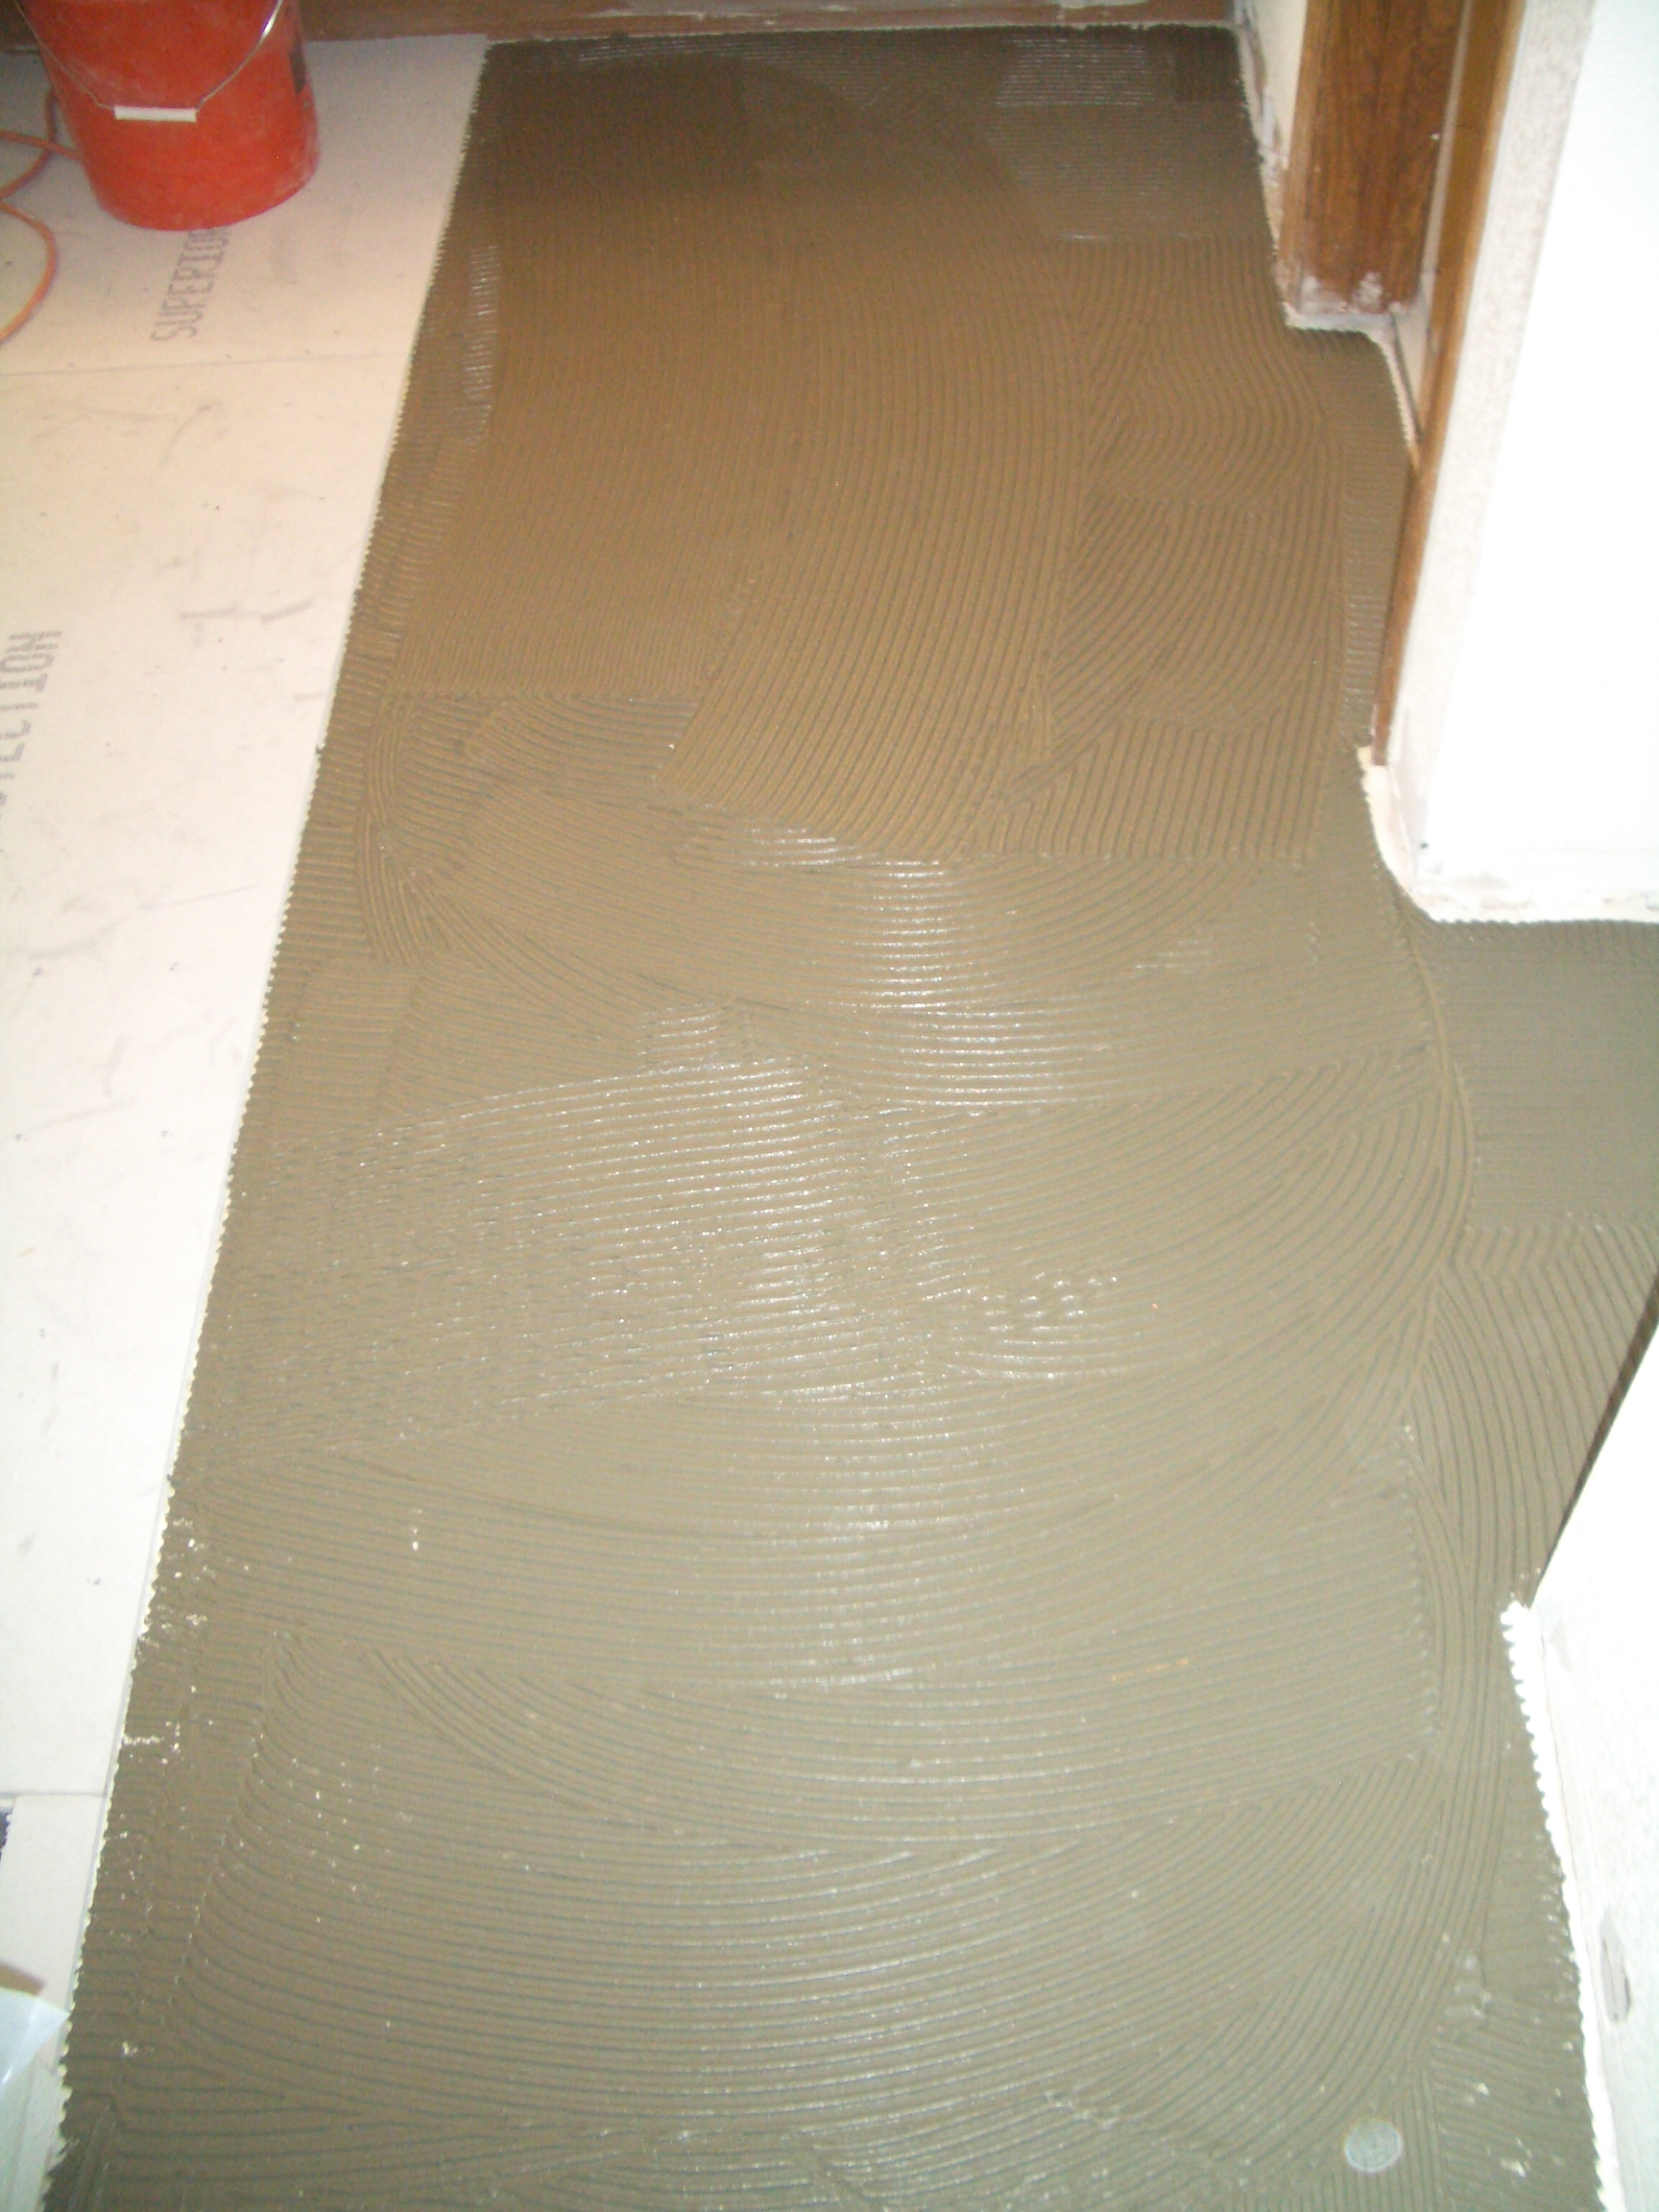 Cement Board Flooring : How thick should cement board be under tile floor